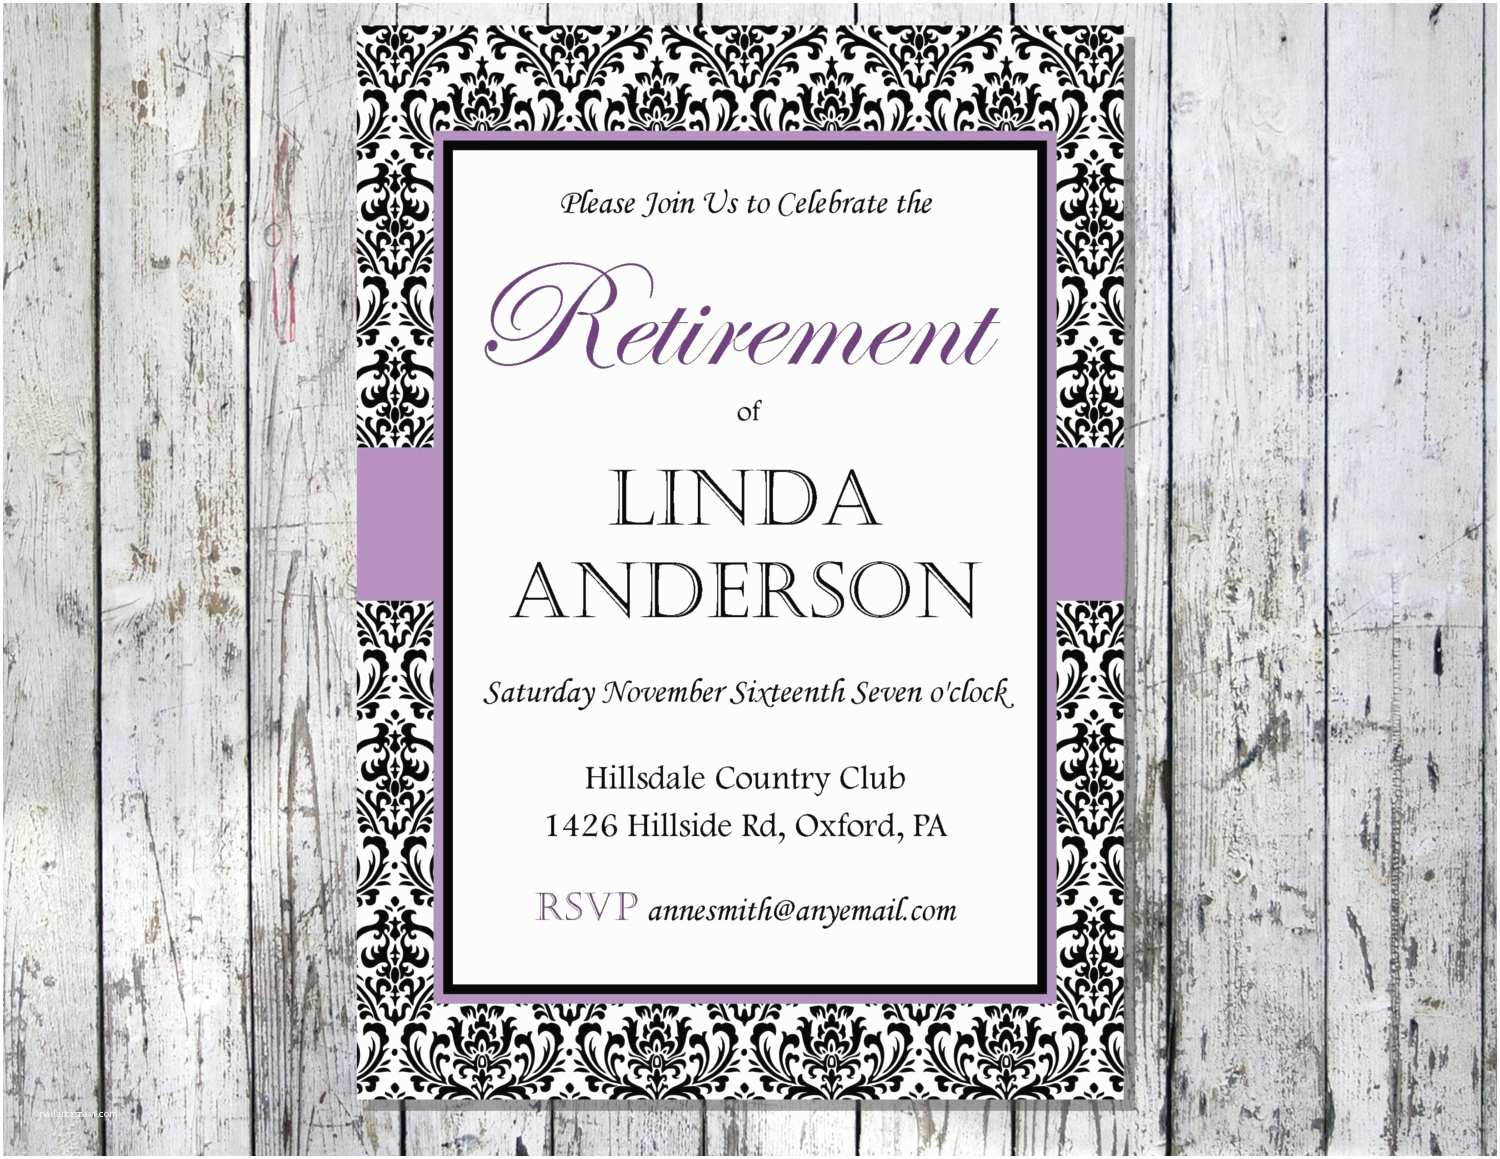 photo regarding Free Printable Retirement Invitations named Retirement Social gathering Invitation Template Free of charge Free of charge Printable